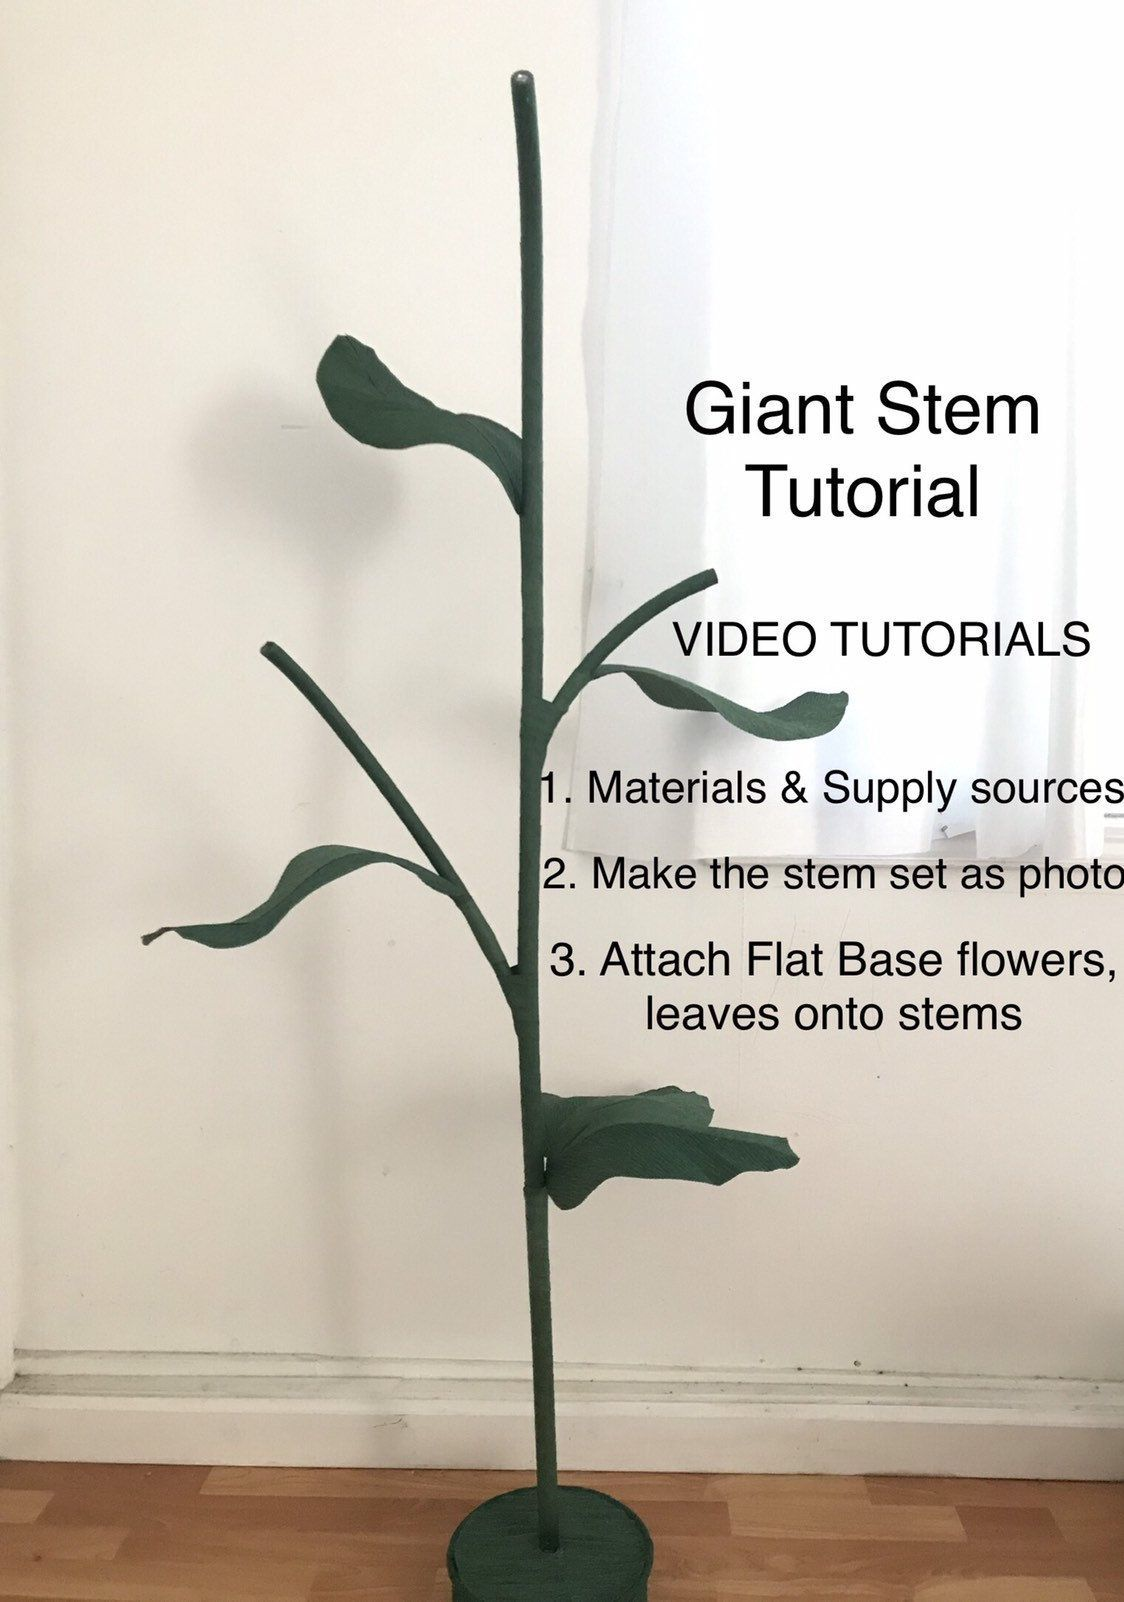 Free Standing Giant Flower Stand Tutorial/ Large Flower Stems Self Standing Flowers/ Giant Flower Stems Big Stems Giant Paper Flowers DIY #bigpaperflowers Free Standing Giant Flower Stand Tutorial/ Large Flower Stems Self Standing Flowers/ Giant Flower Stems Big Stems Giant Paper Flowers DIY by MaiPaperFlowers on Etsy #bigpaperflowers